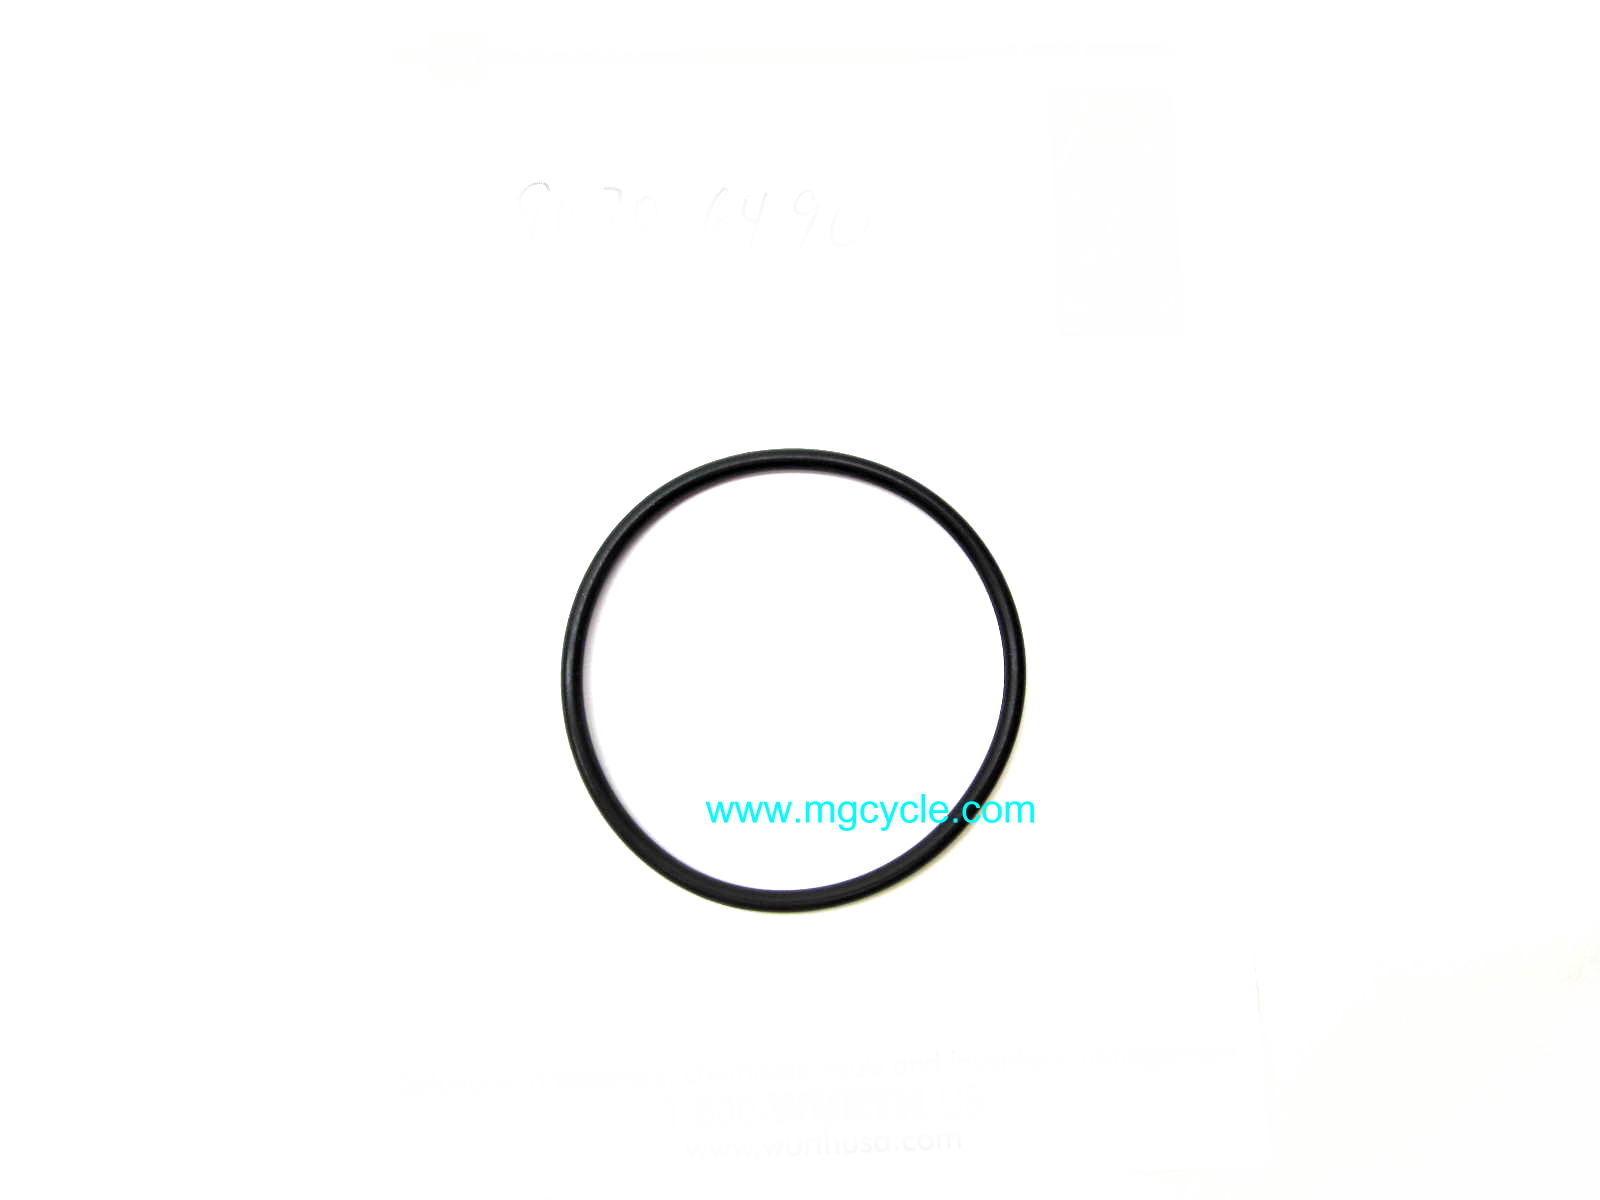 Oring, V700 Amb Eld forks, drum rear drive pinion carrier flange